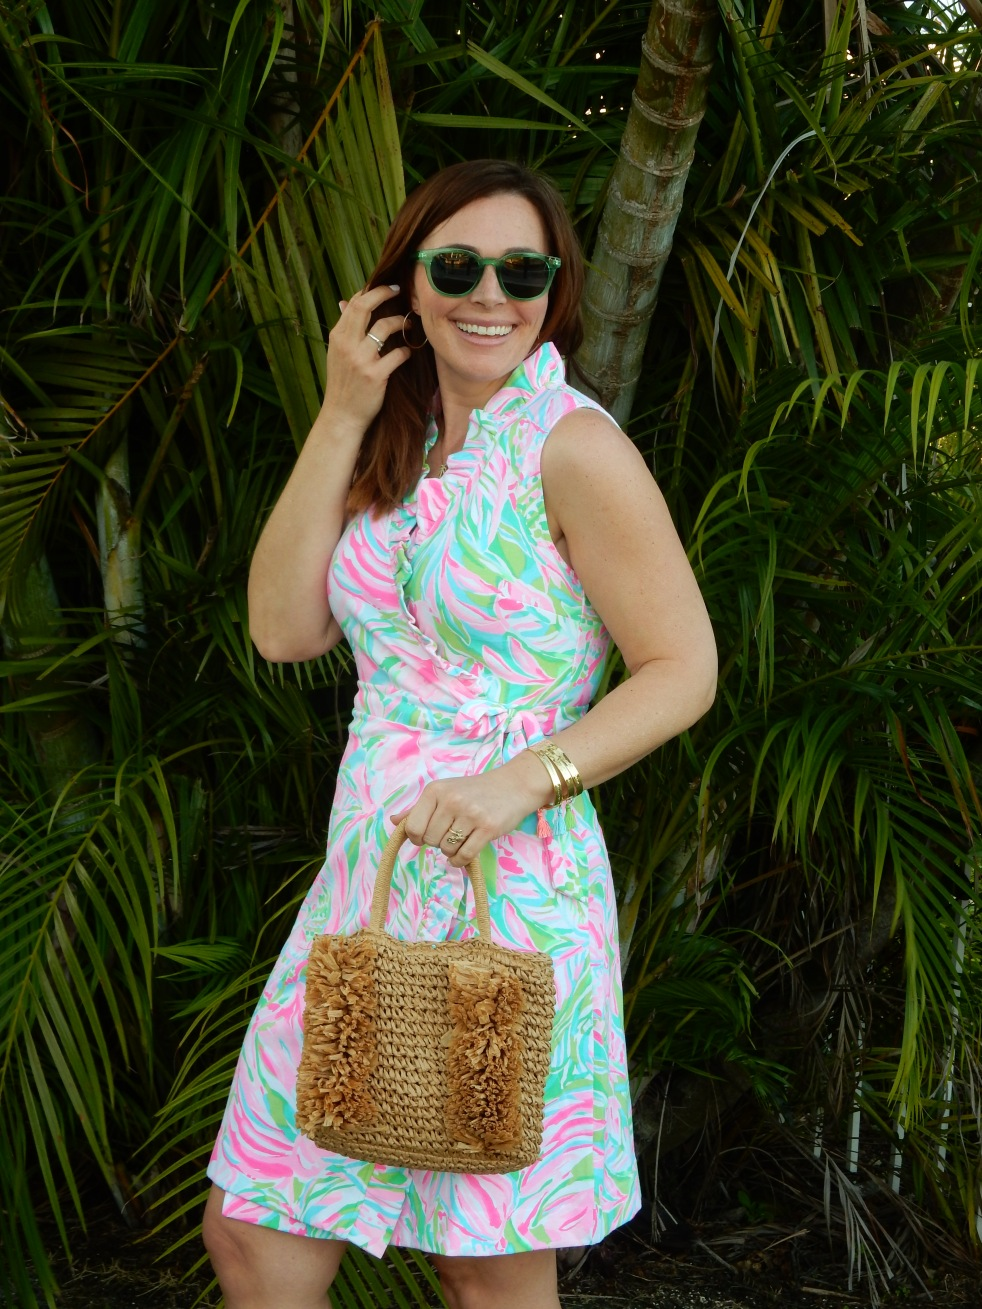 Wrapped in Summer, Lilly Wrap Dress, Lilly Pulitzer Wrap Dress, Mod Fashion, 1960's Fashion, 60s Fashion, Retro Fashion Inspiration, Lilly Pulitzer Print, Lilly Pulitzer History, Green Sunglasses, Lilly Pulitzer Bracelets, Fringe Straw Purse, Fringe Straw Bag, Mod Sandals, Block Sandals, Florida Fashion, Summer Style, Summer 2021 Fashion, Classic Summer Style, Classic Summer Fashion, Blogger Fashion Tips, What to Wear This Summer, What She Wore, Sarah Meyer, SarahInStyle.com, Sarah In Style, Tropical Fashion, Perfect Summer Style, Florida Fashion Blogger, Chicago Fashion Blogger, Loft Purse Sunglass Warehouse, Mermaid Ring, Alex and Ani Ring